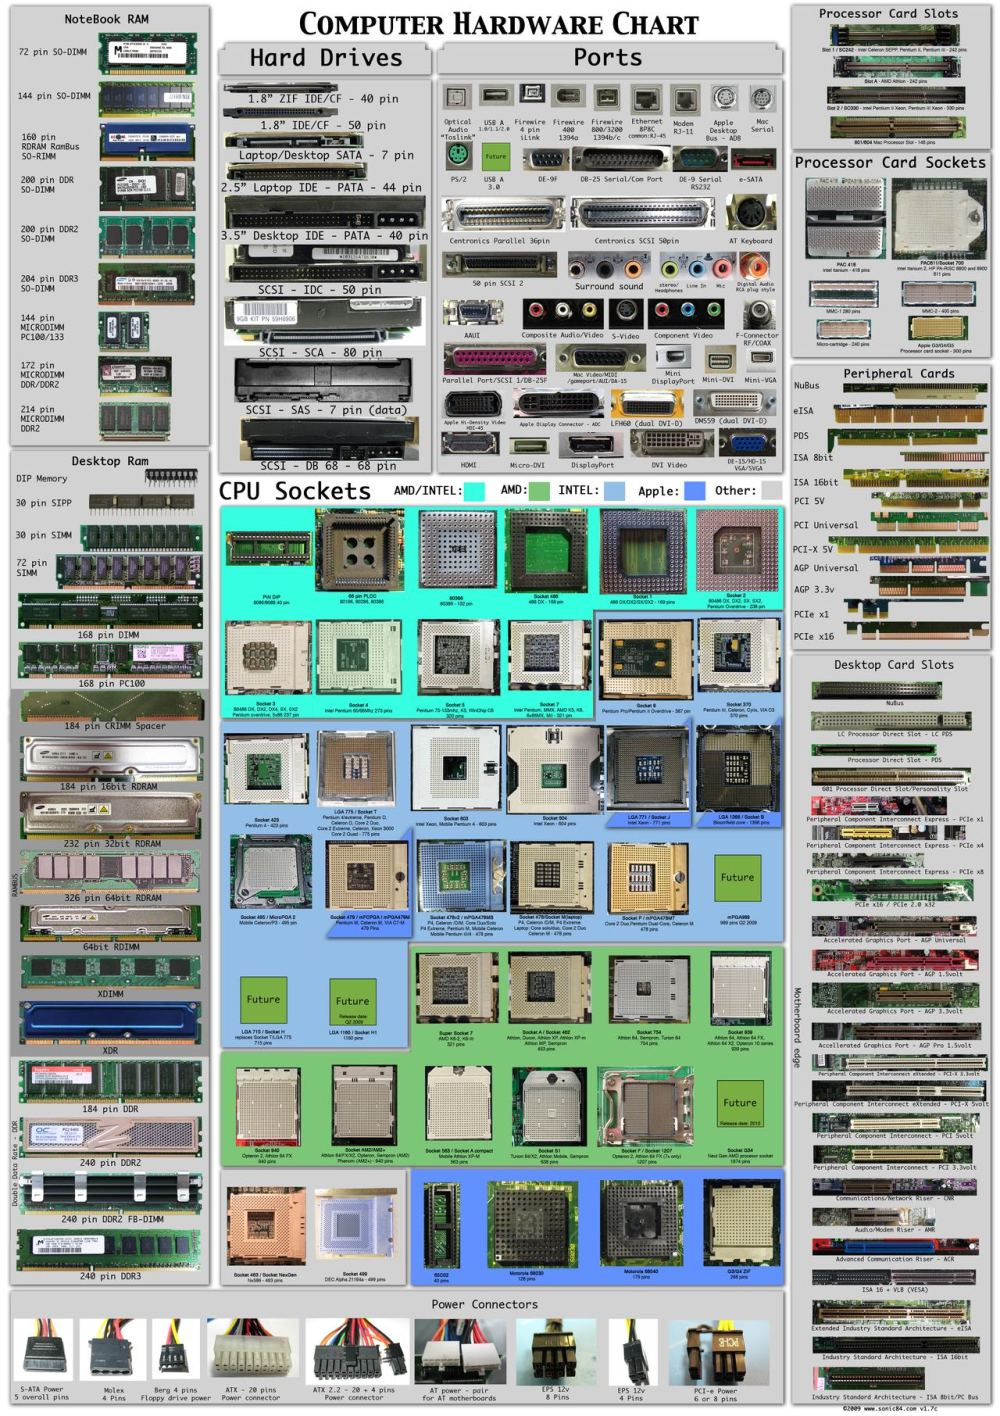 the complete computer hardware chart